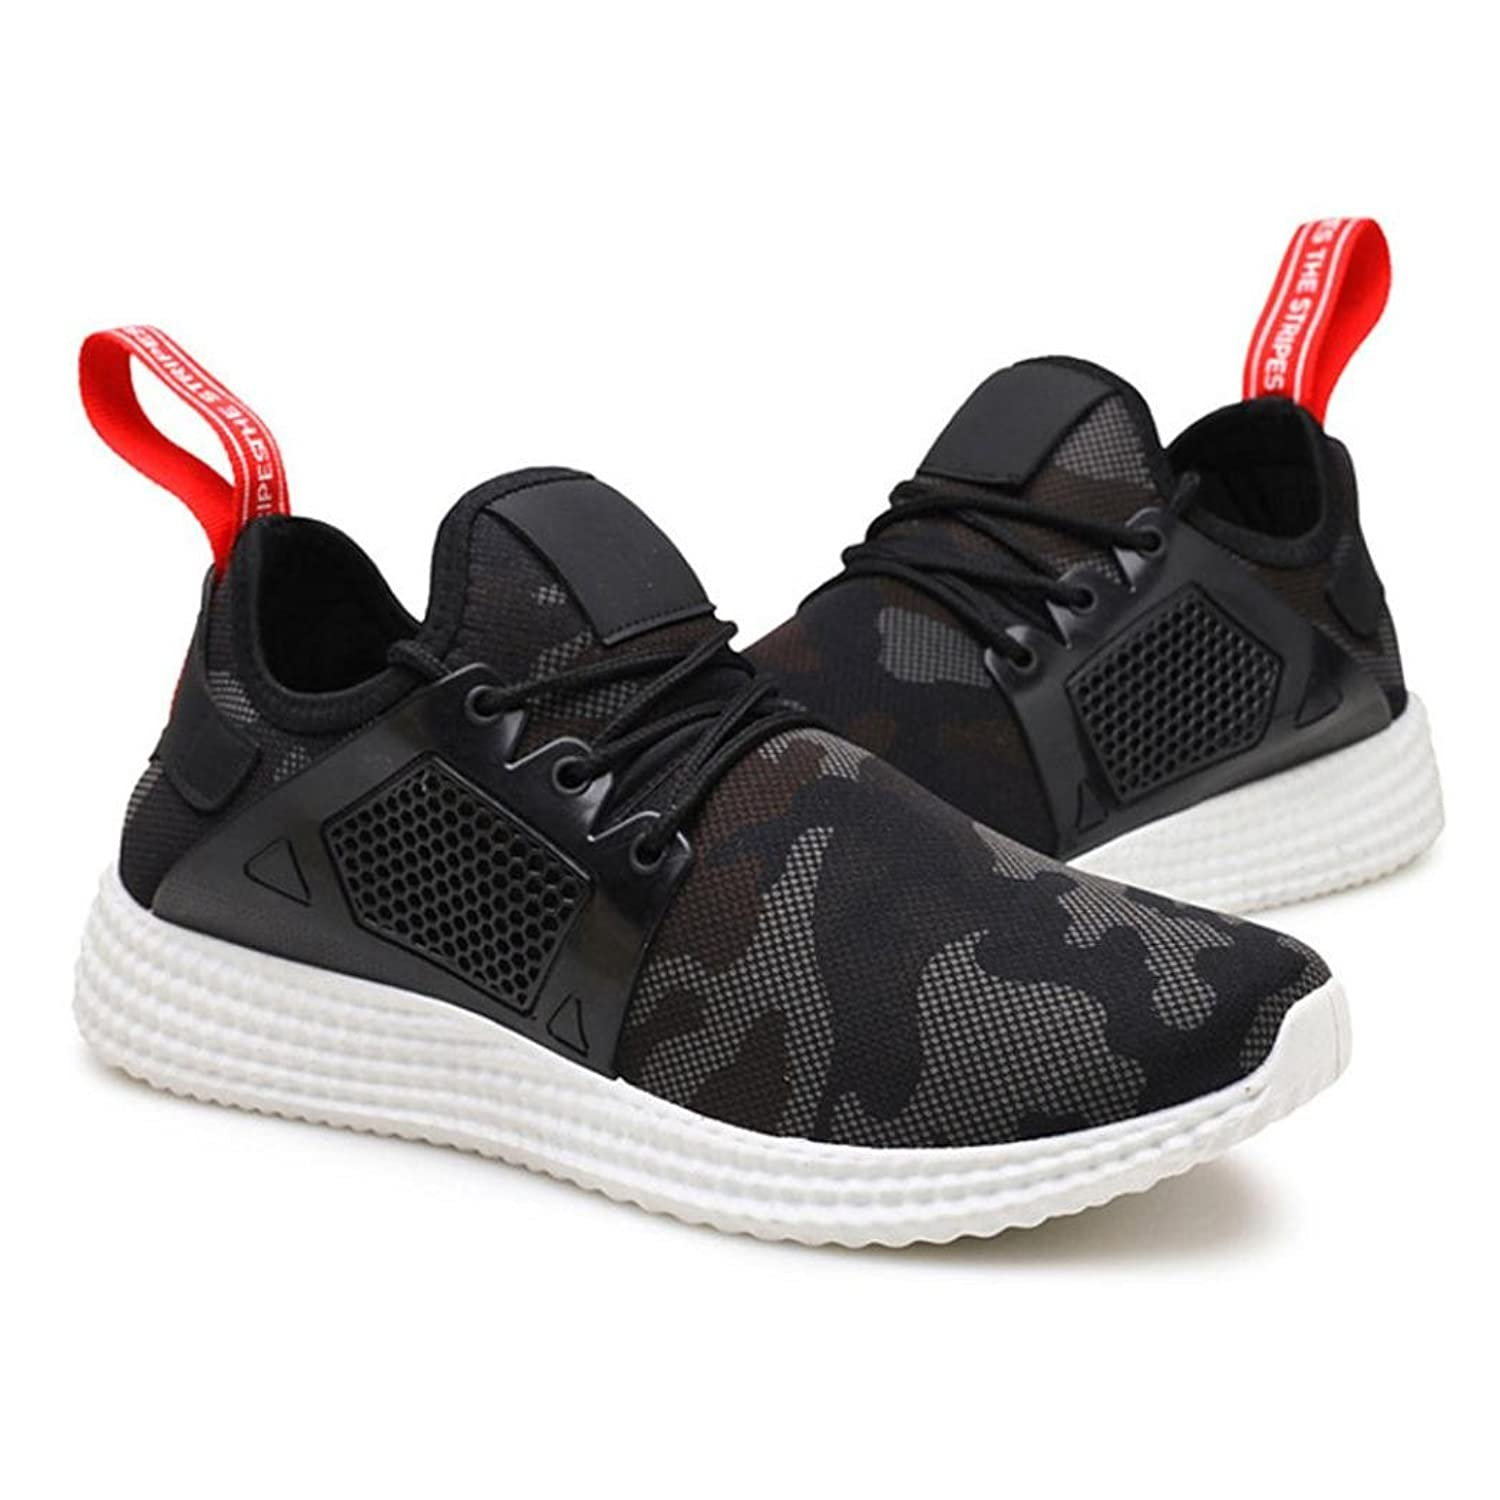 Men's Sports Shoes, Byste Lightweight Breathable Sneakers Camouflage for Running  Hiking Exercise: Amazon.co.uk: Shoes & Bags